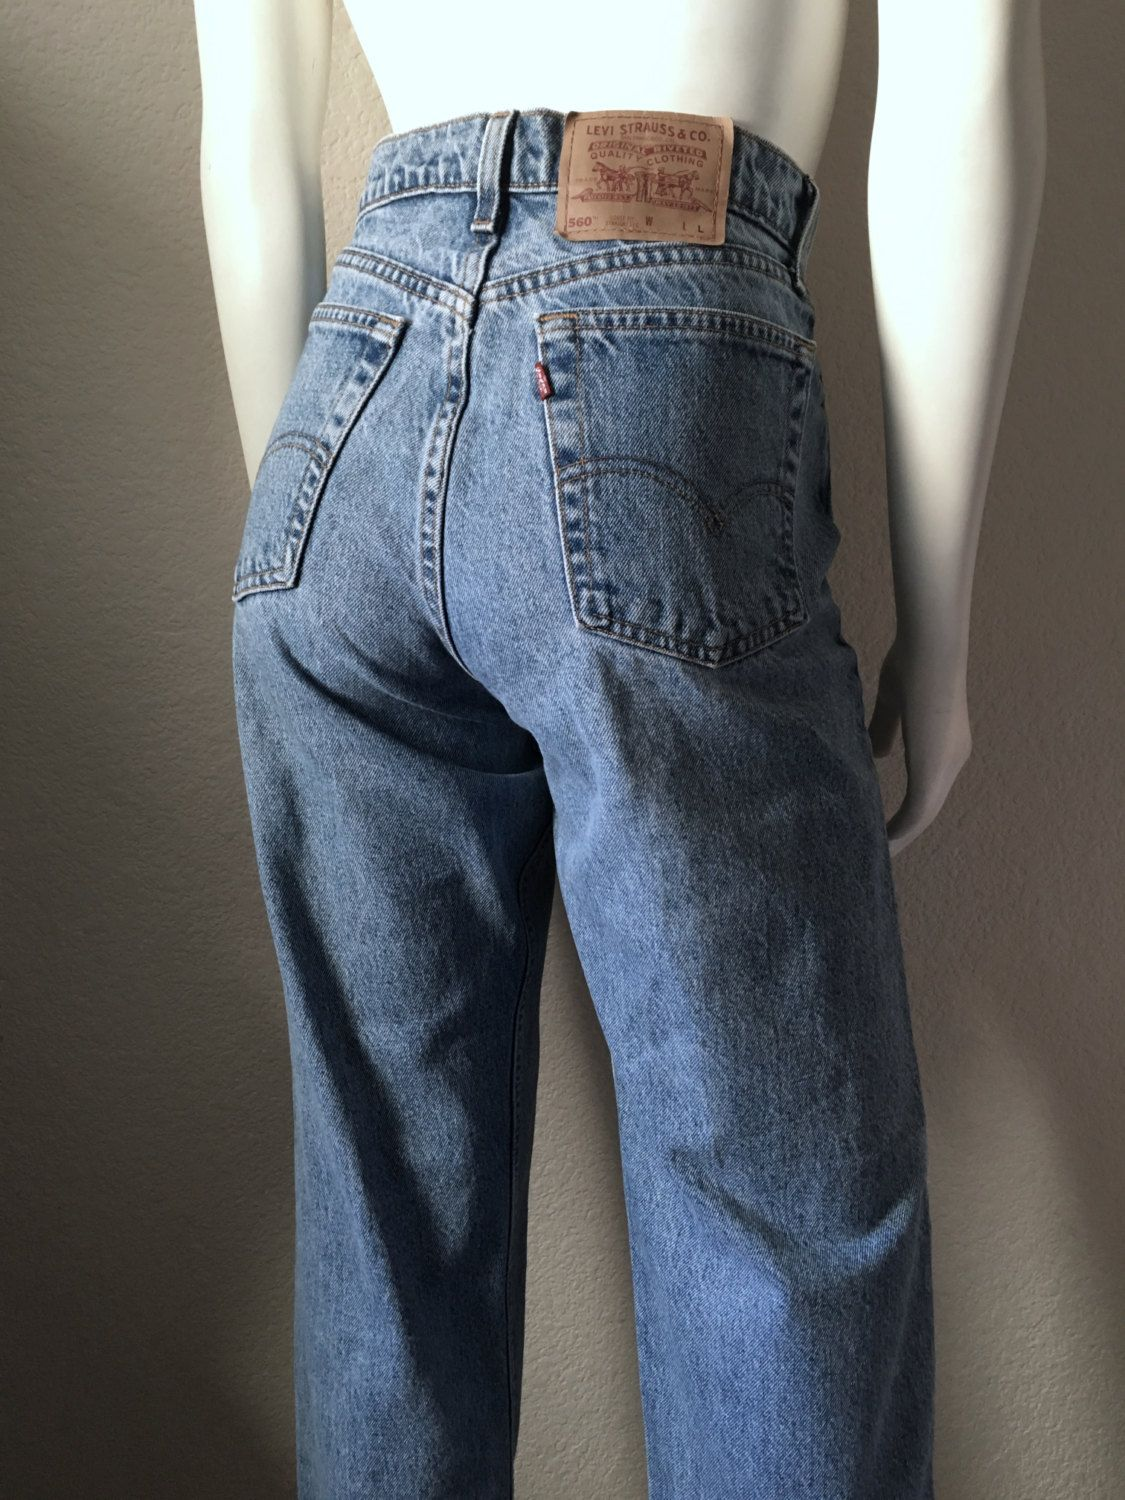 5aed4d34 Vintage Women's 90's Levi's 560, High Waisted, Jeans, Loose Fit, Straight  Leg, Denim (L) by Freshandswanky on Etsy